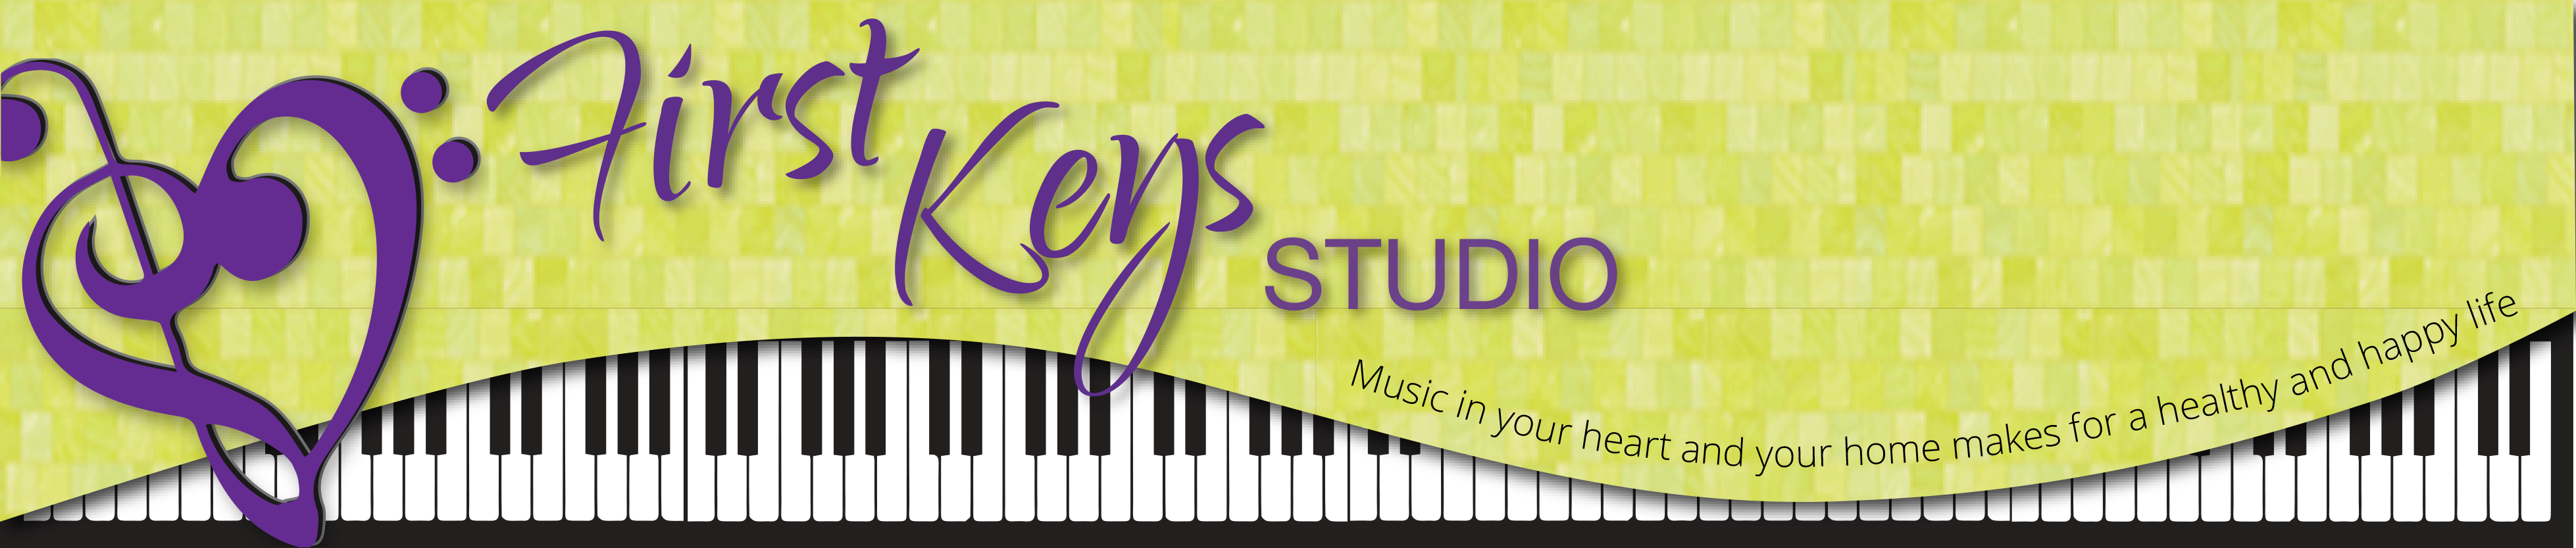 logo for first keys studio in Courtenay BC, designed by Maggie Ziegler